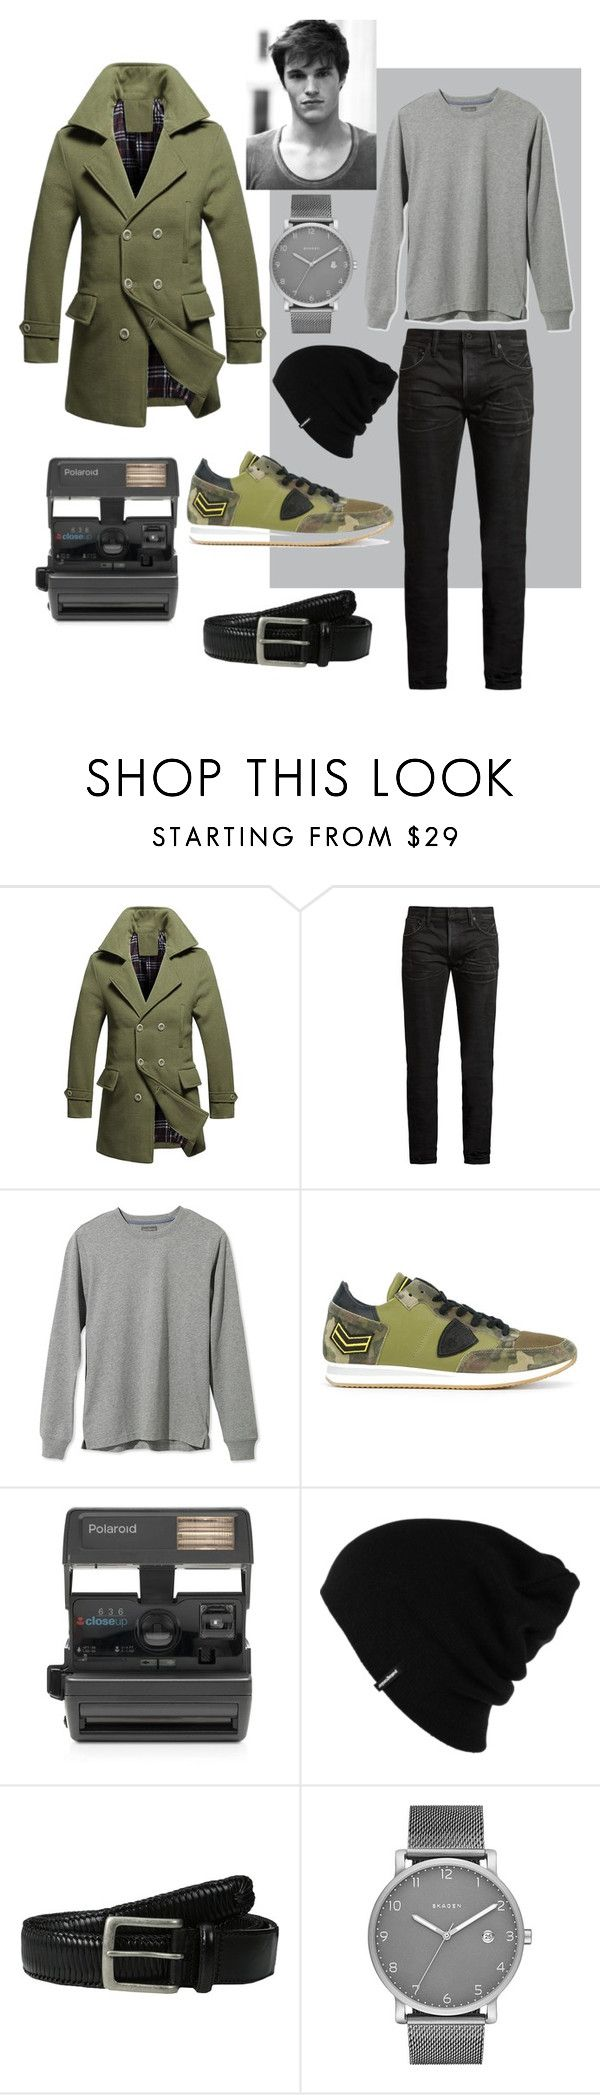 menlook by malishevan on Polyvore featuring L.L.Bean, MasterCraft Union, Philippe Model, Skagen, Impossible, Tommy Bahama, Patagonia, DUO, men's fashion and menswear